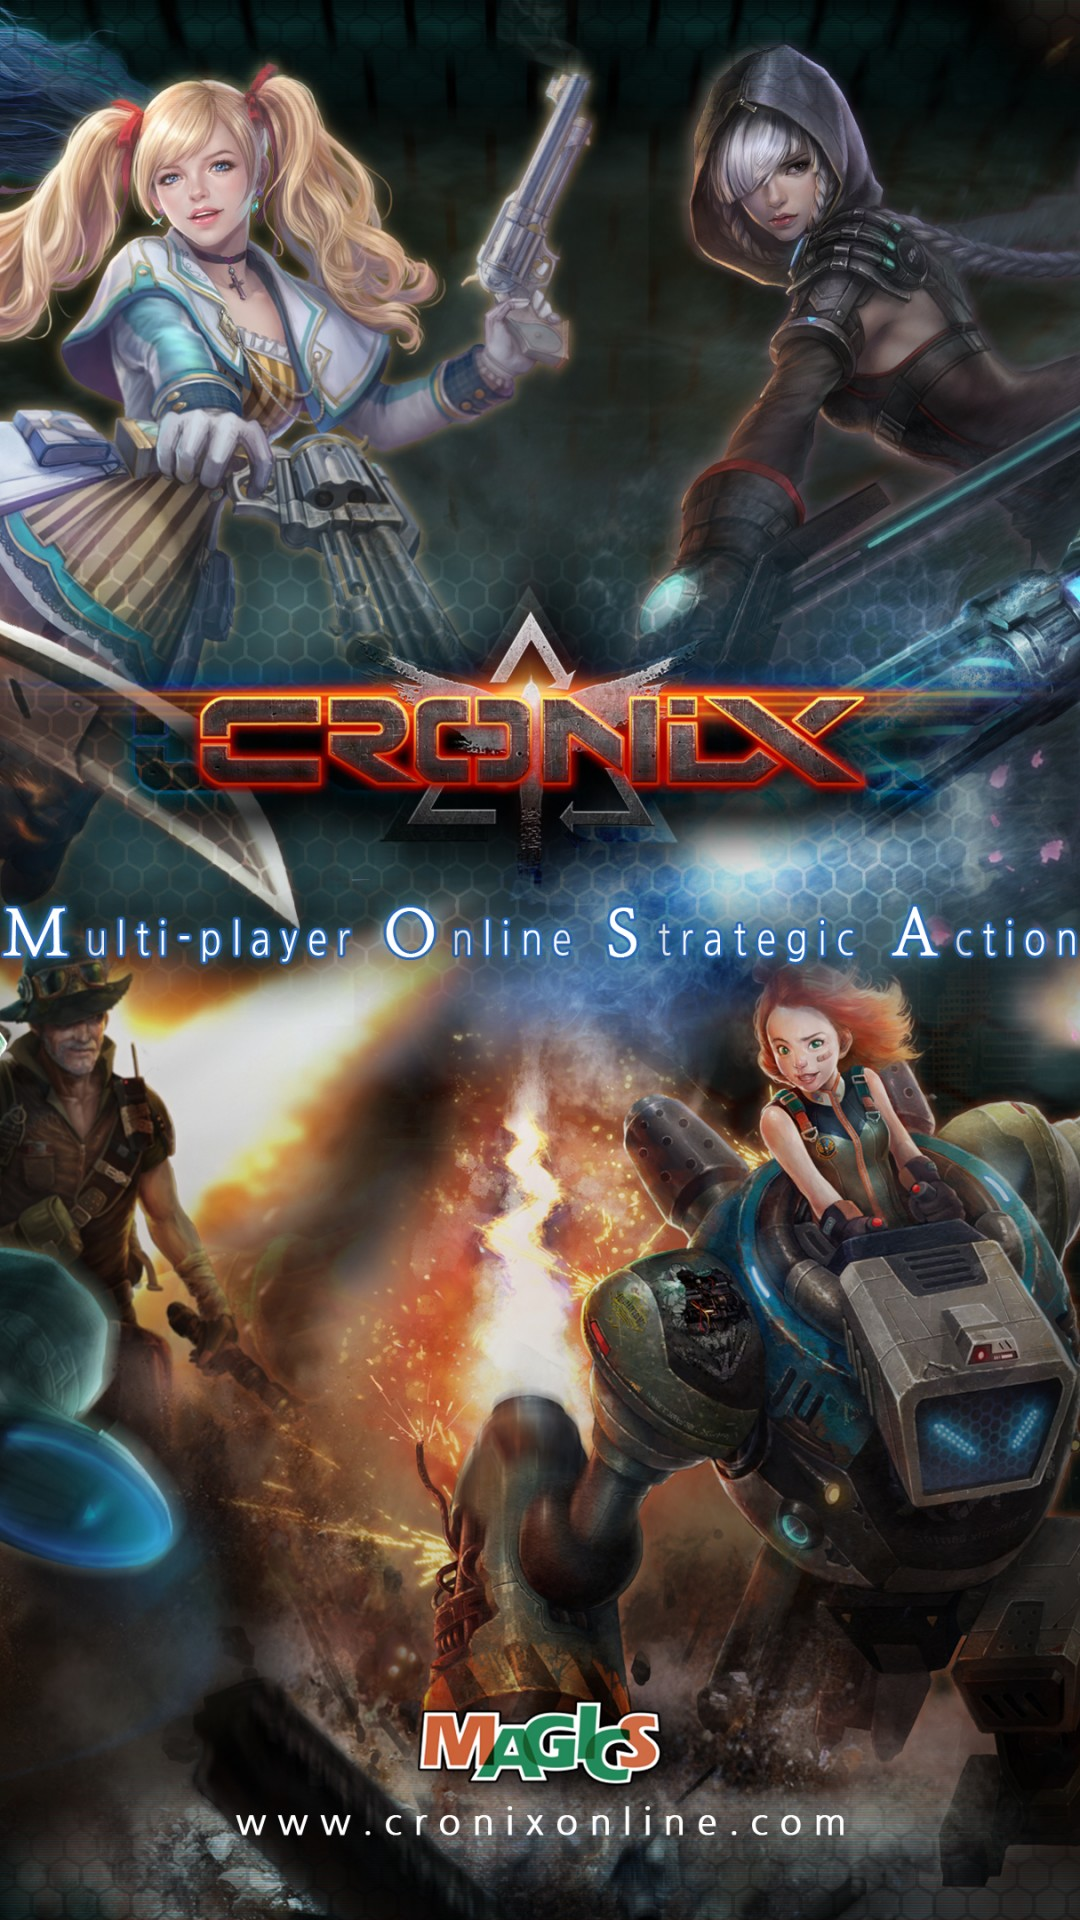 cronix-1080x1920-best-games-2015-game-arcade-indie-pc-6767.jpg